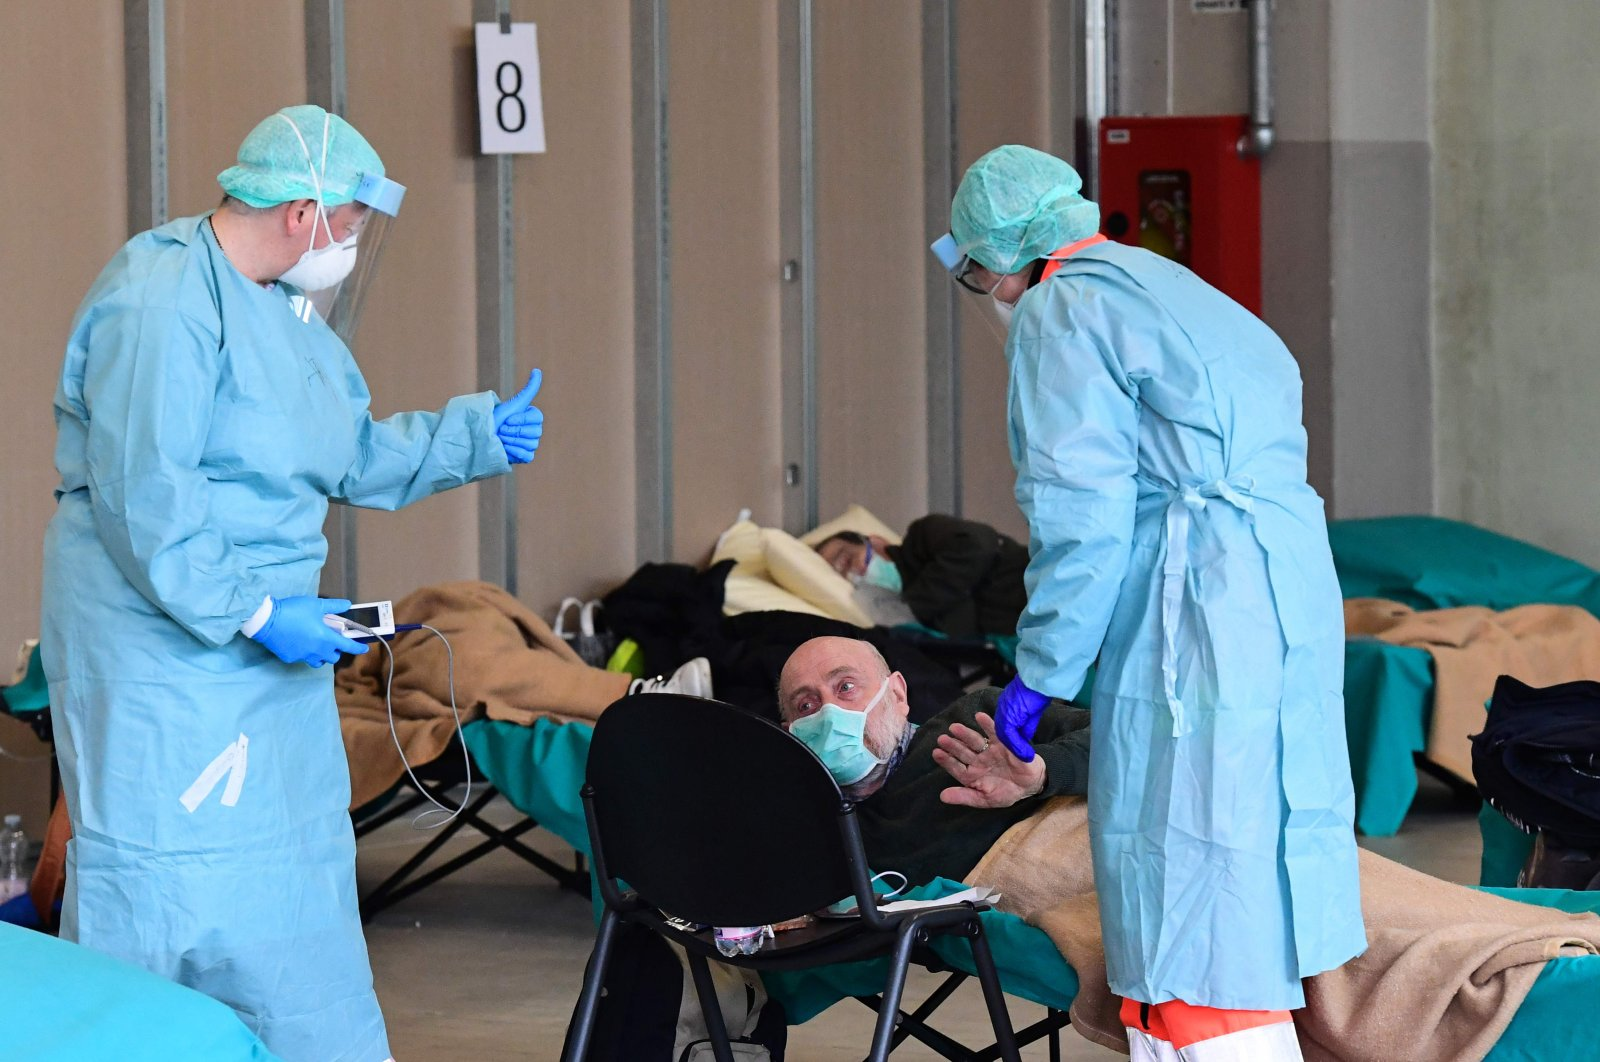 Hospital employees wearing protection masks and gear tend to a patient at a temporary emergency structure set up outside the accident and emergency department, where any new arrivals presenting symptoms of COVID-19 are being tested, at the Brescia hospital, Lombardy,, March 13, 2020. (AFP Photo)